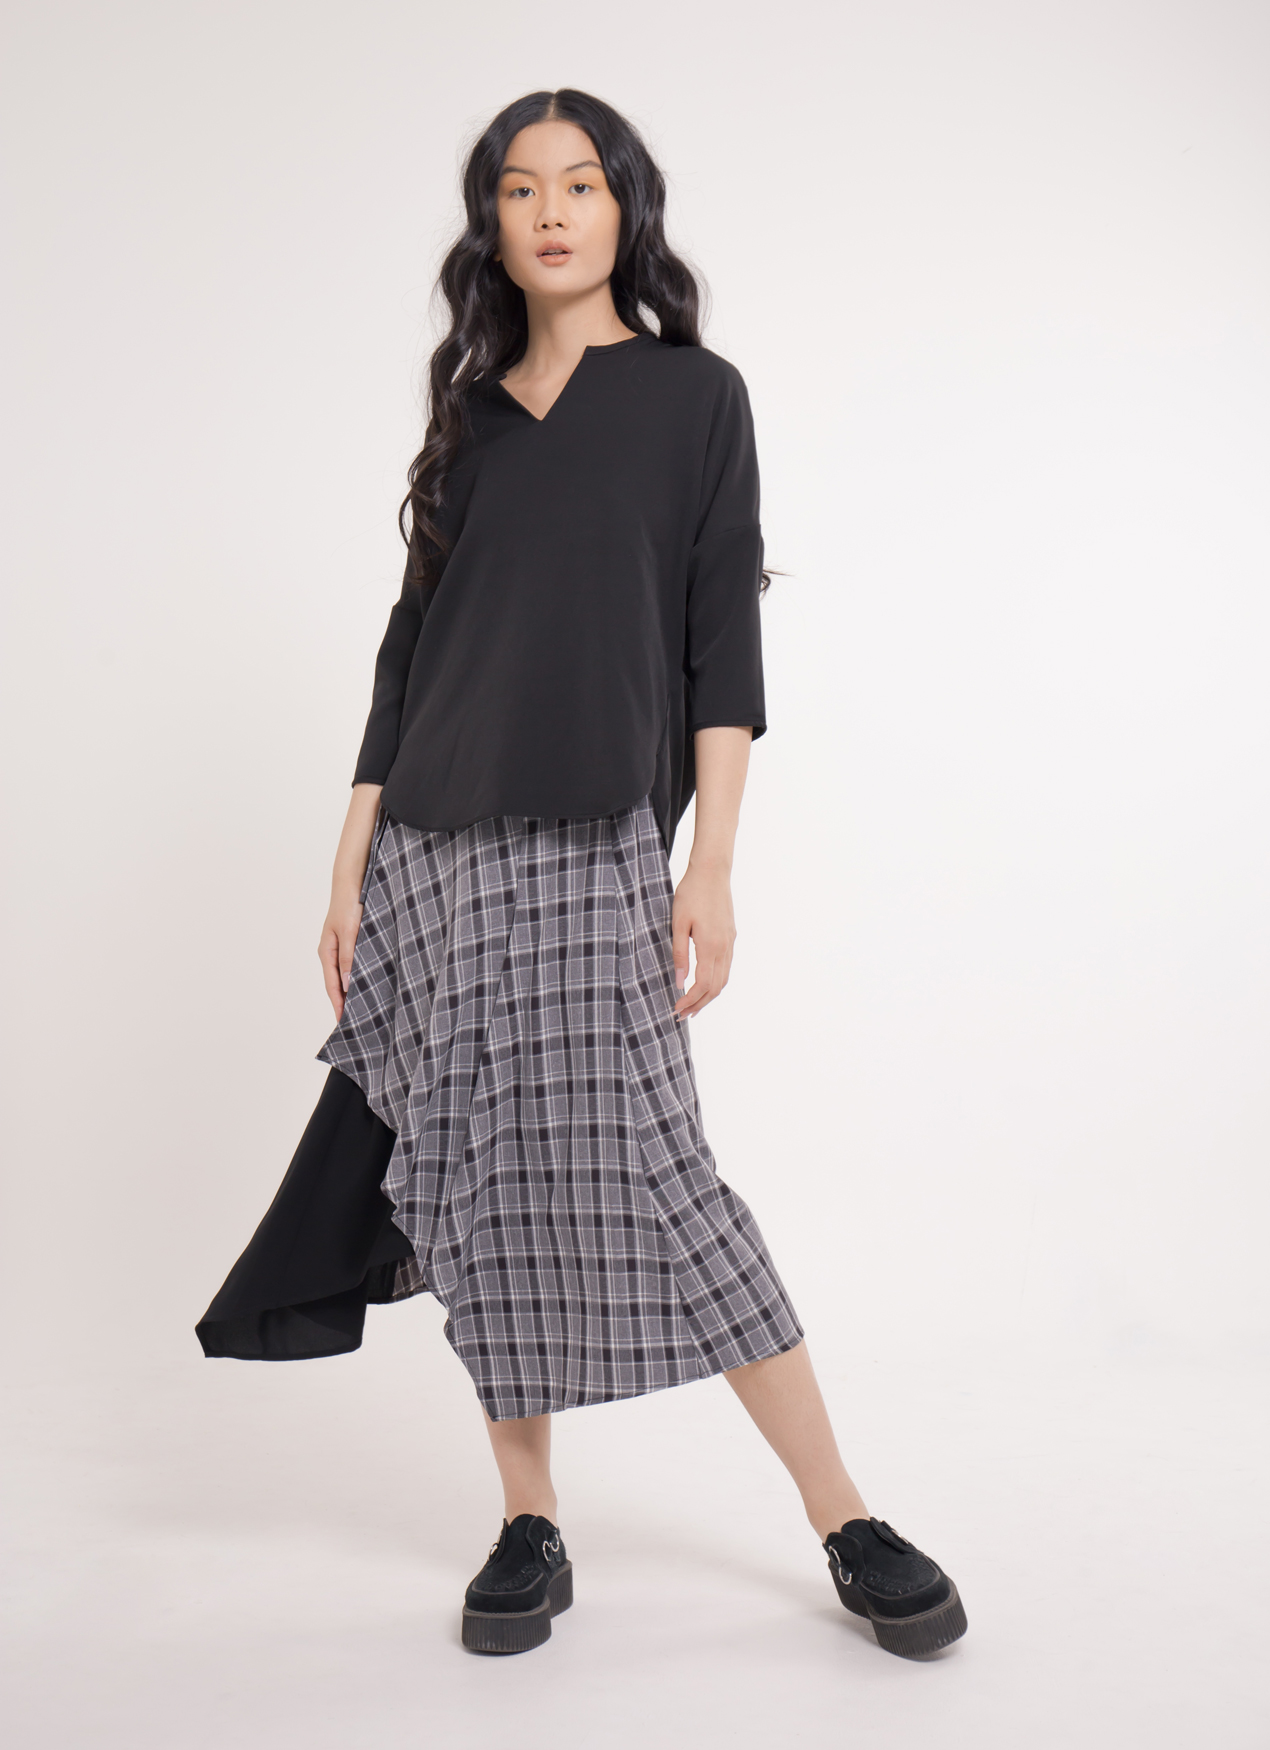 Earth, Music & Ecology Hana Top - Black